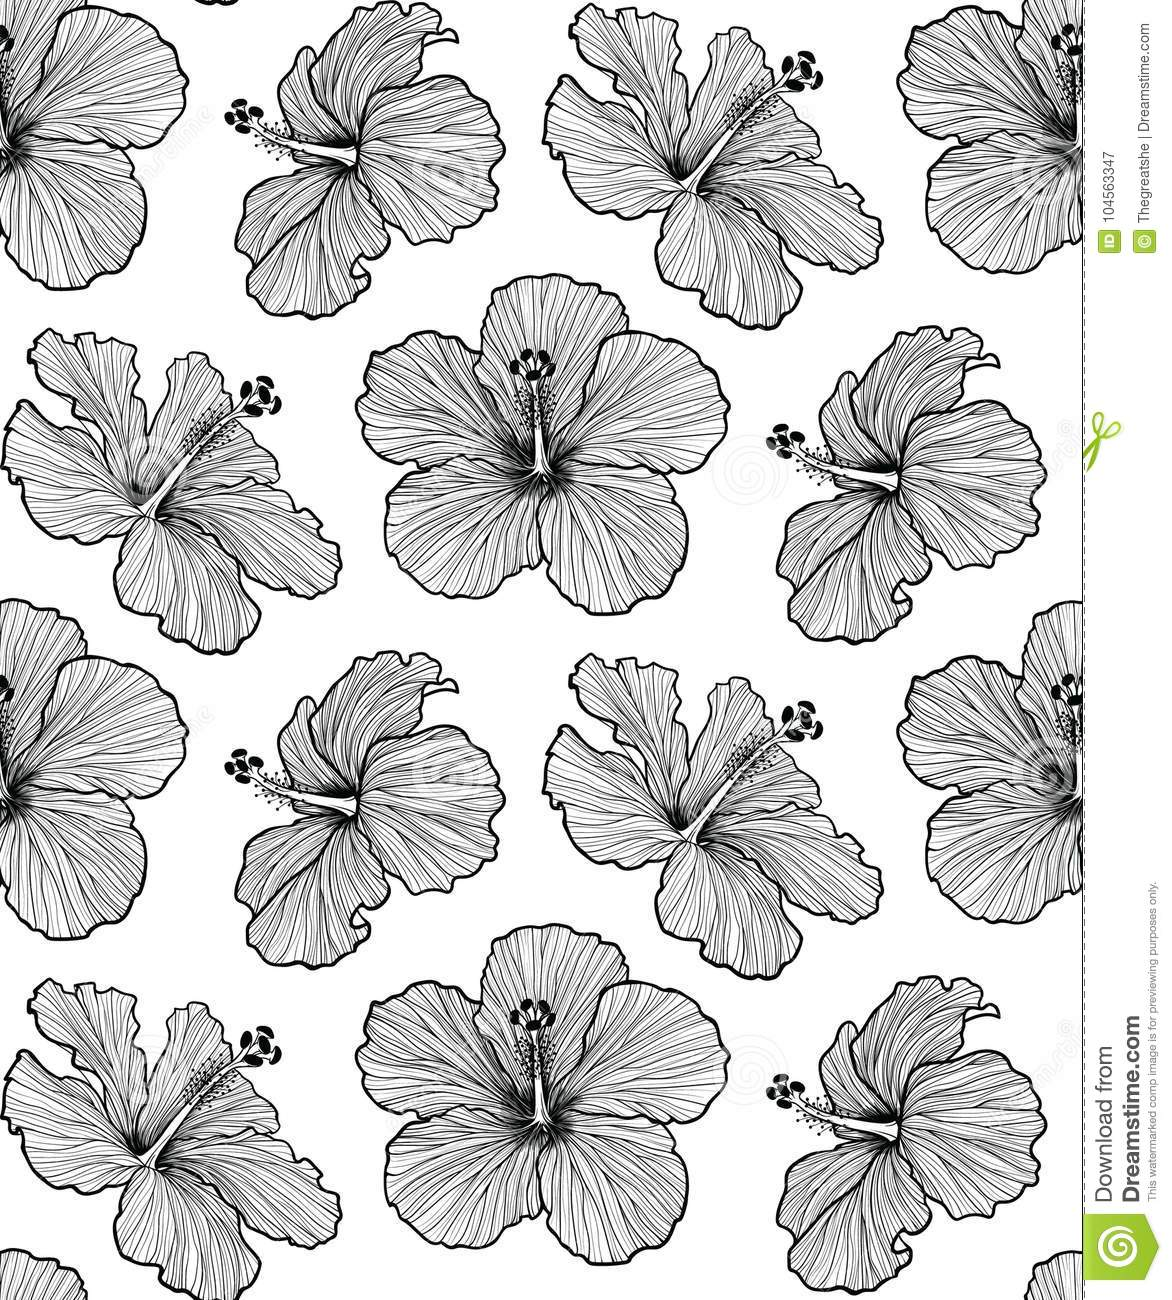 Hibiscus blooming flower seamless pattern stock vector hibiscus flower seamless pattern good for textile design or wrapping paper izmirmasajfo